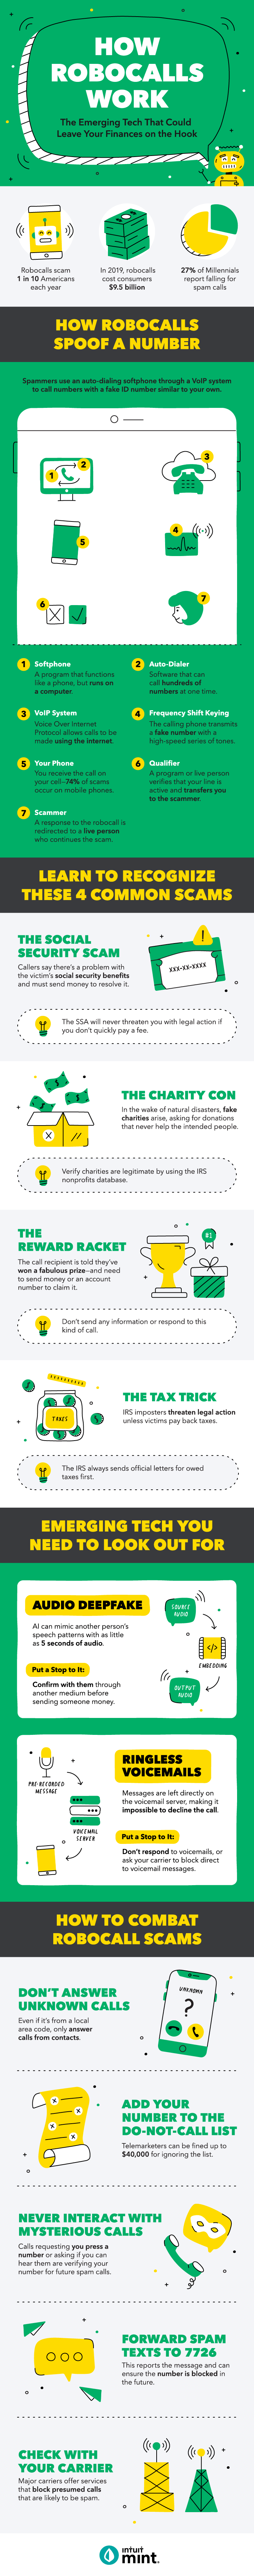 How robocalls work infographic